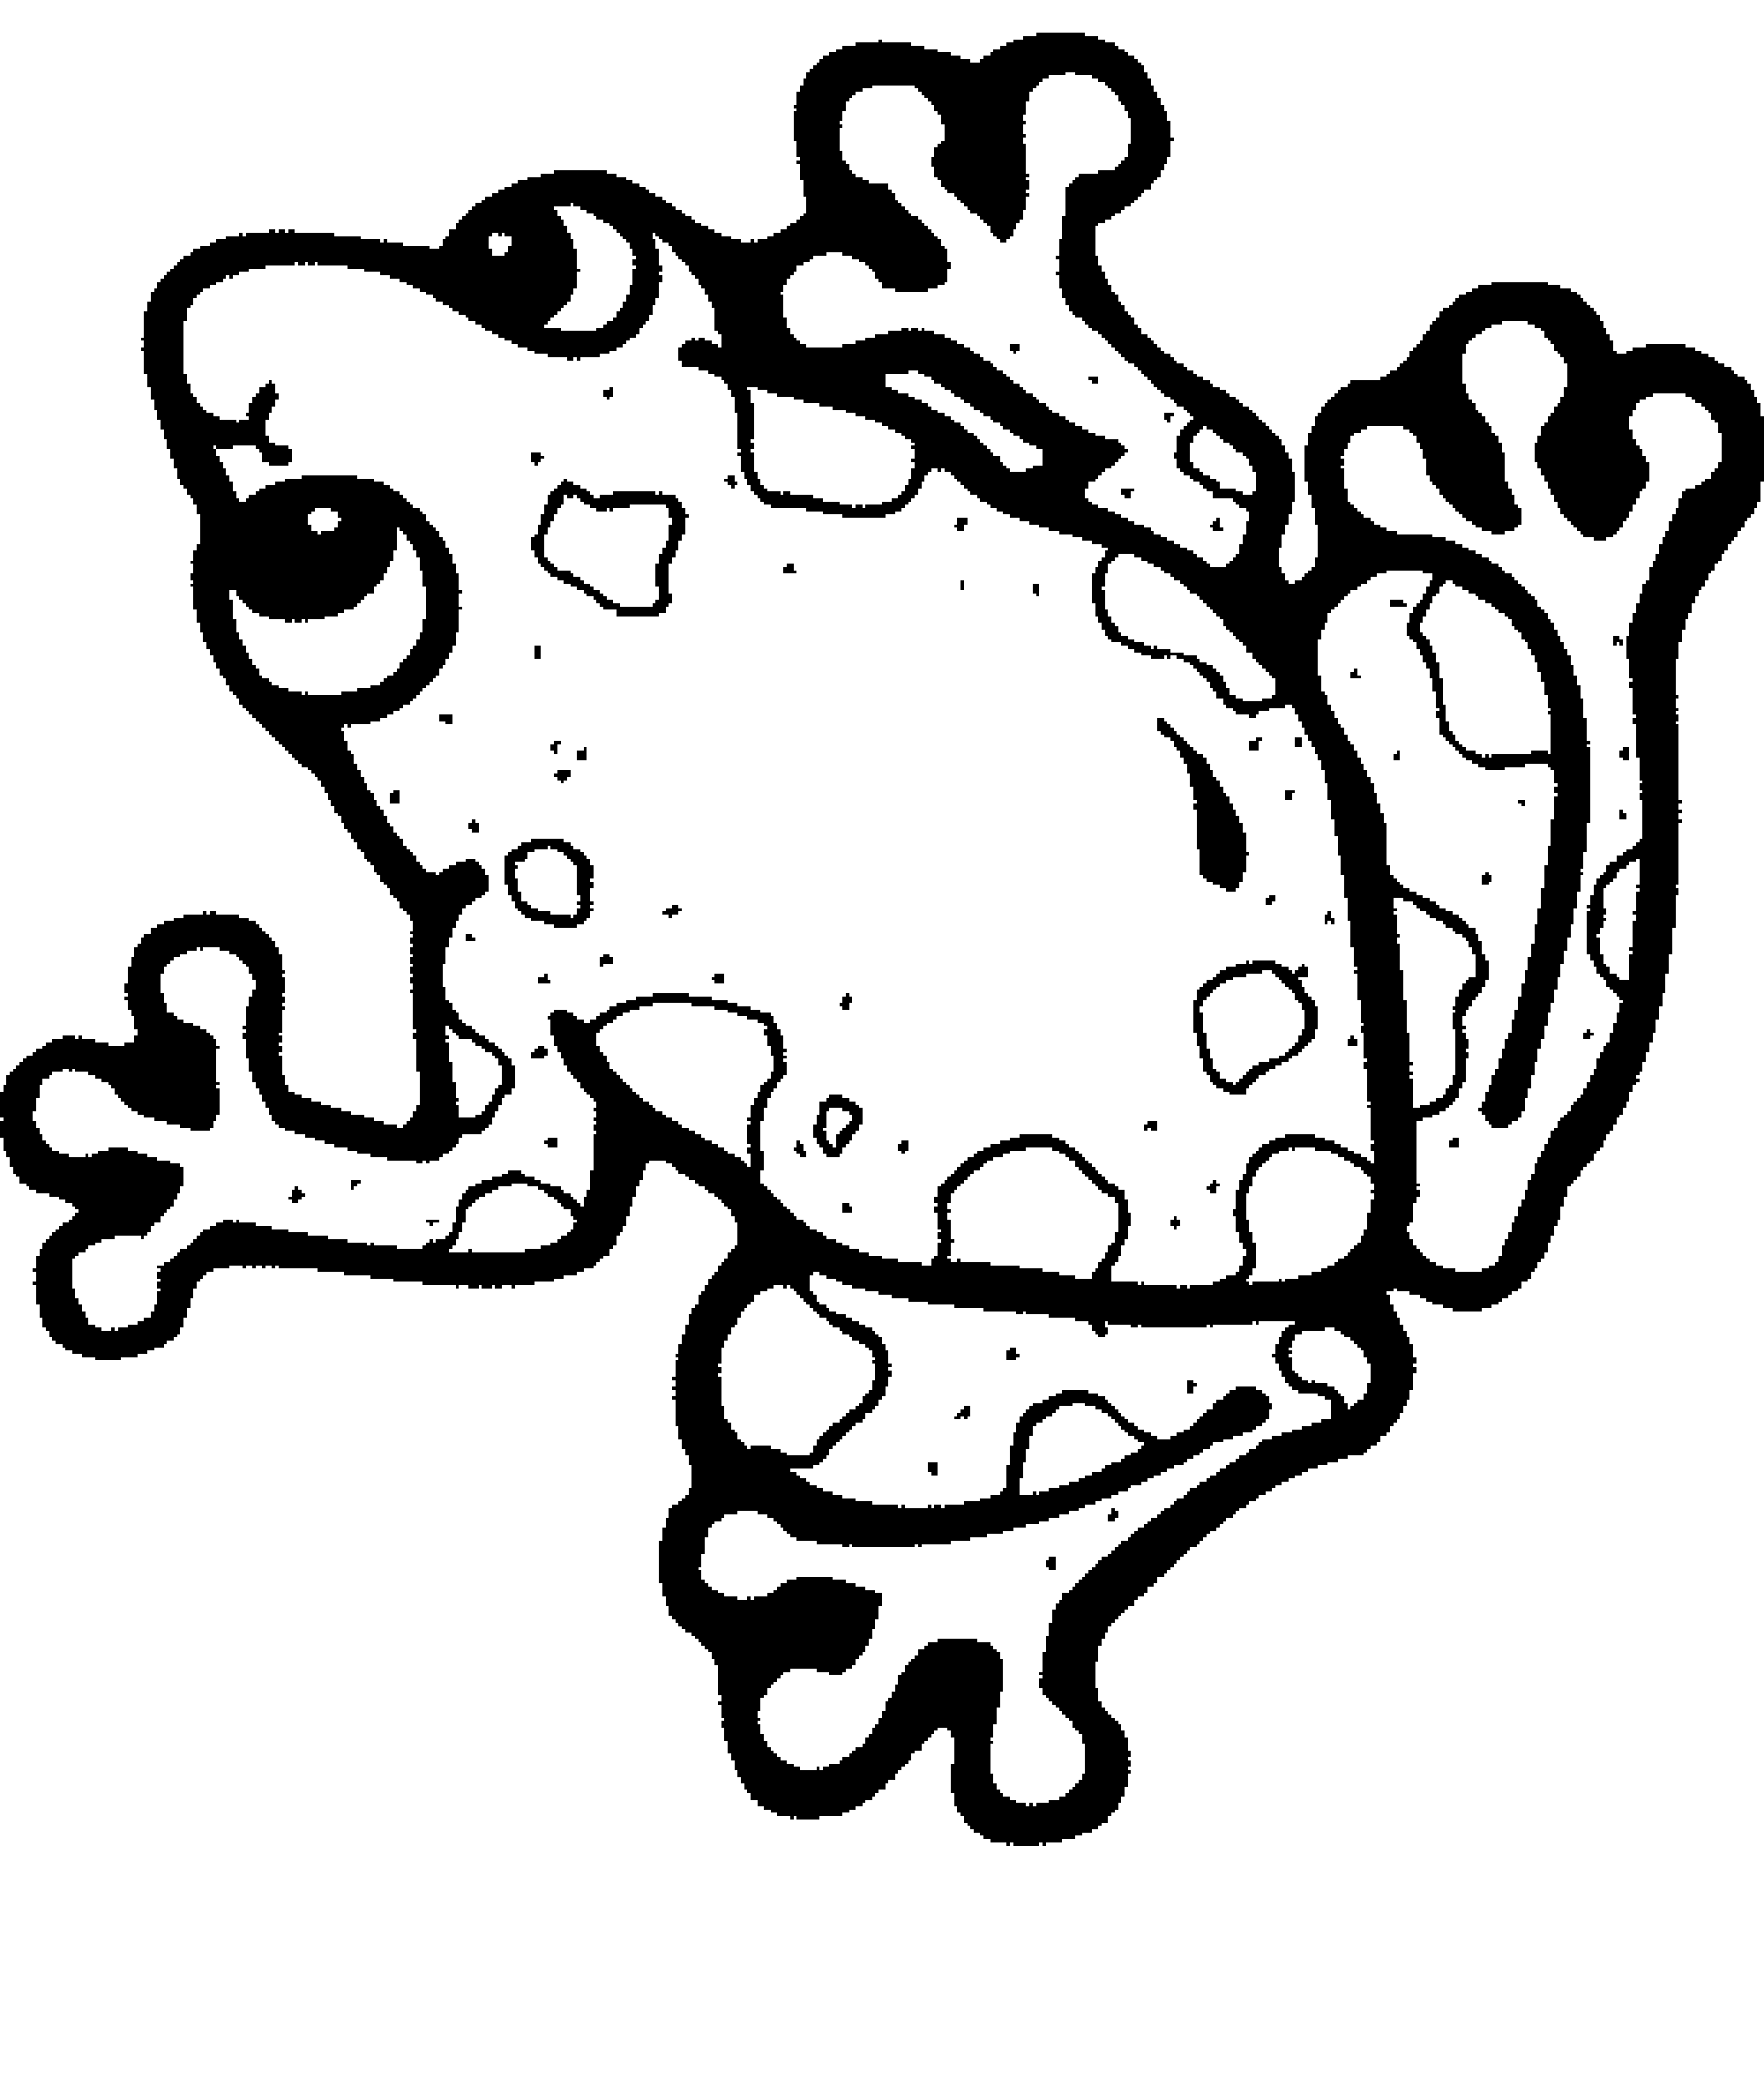 pictures of frogs to color tree frog coloring pages free download on clipartmag pictures color of frogs to